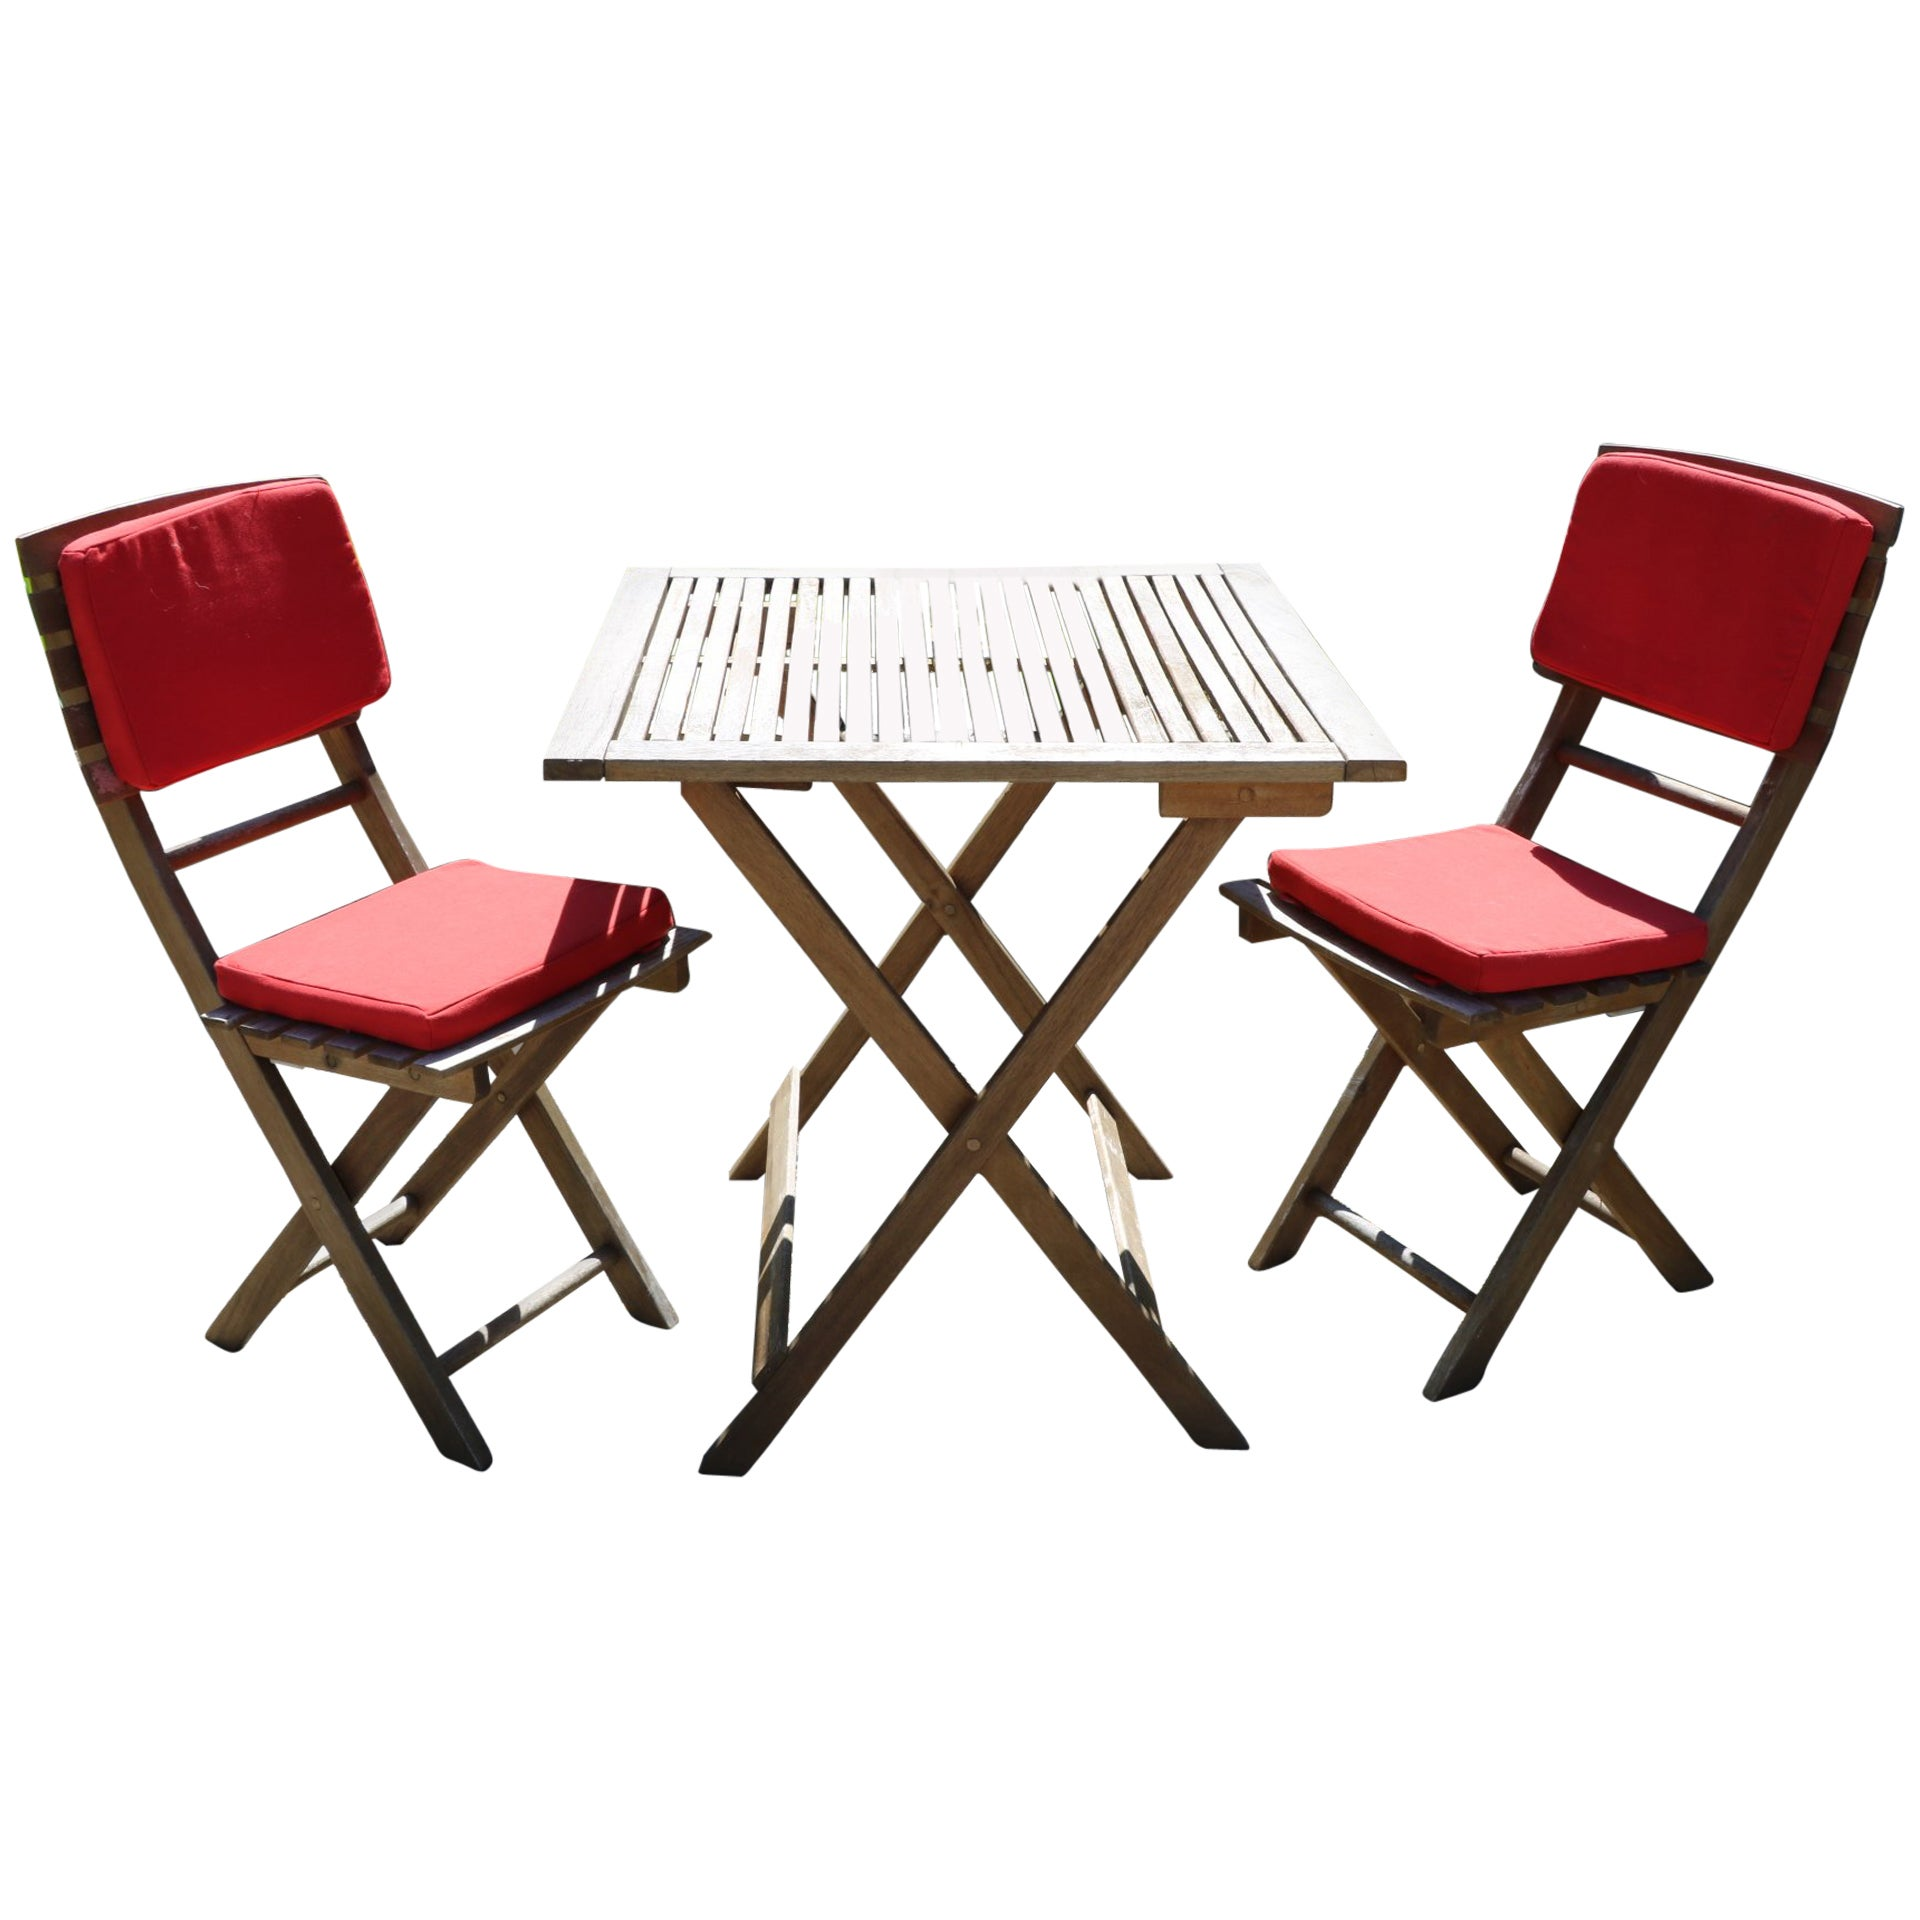 Outdoor French Bistro Chairs Bon Appétit French Teak Bistro Indoor Outdoor Folding Table And Chairs